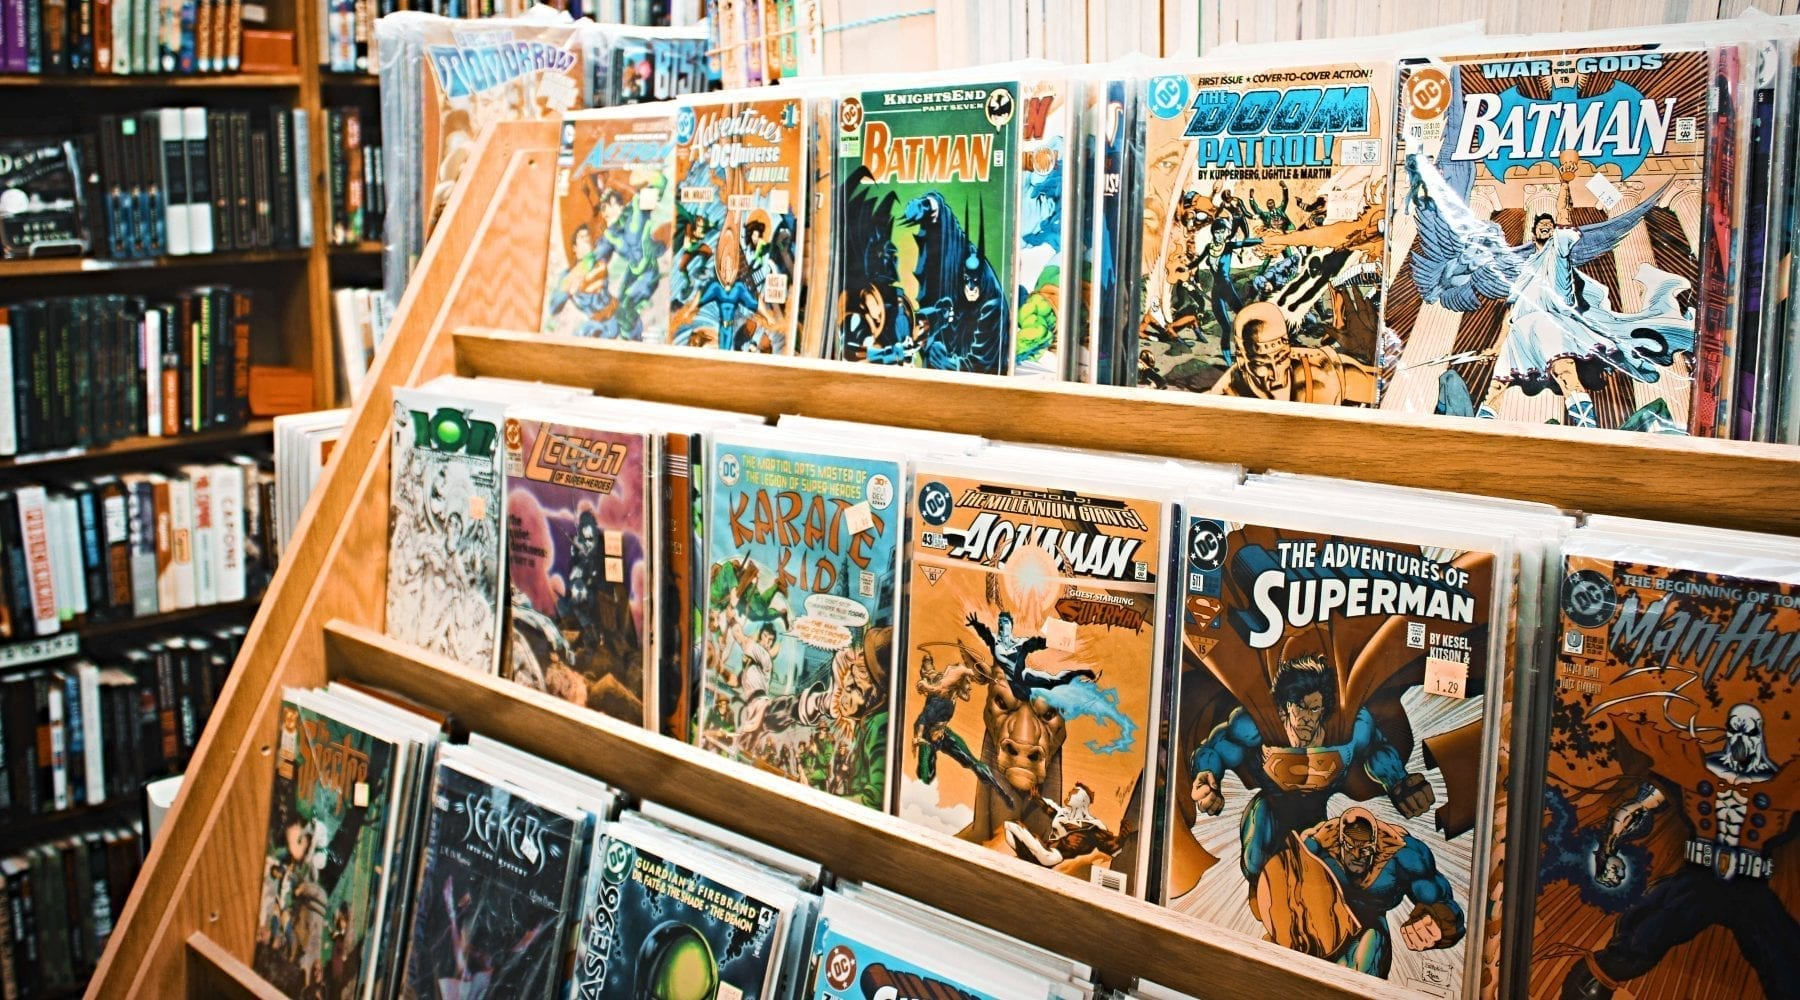 Questioning Society Discovers Jesus in Comic Books